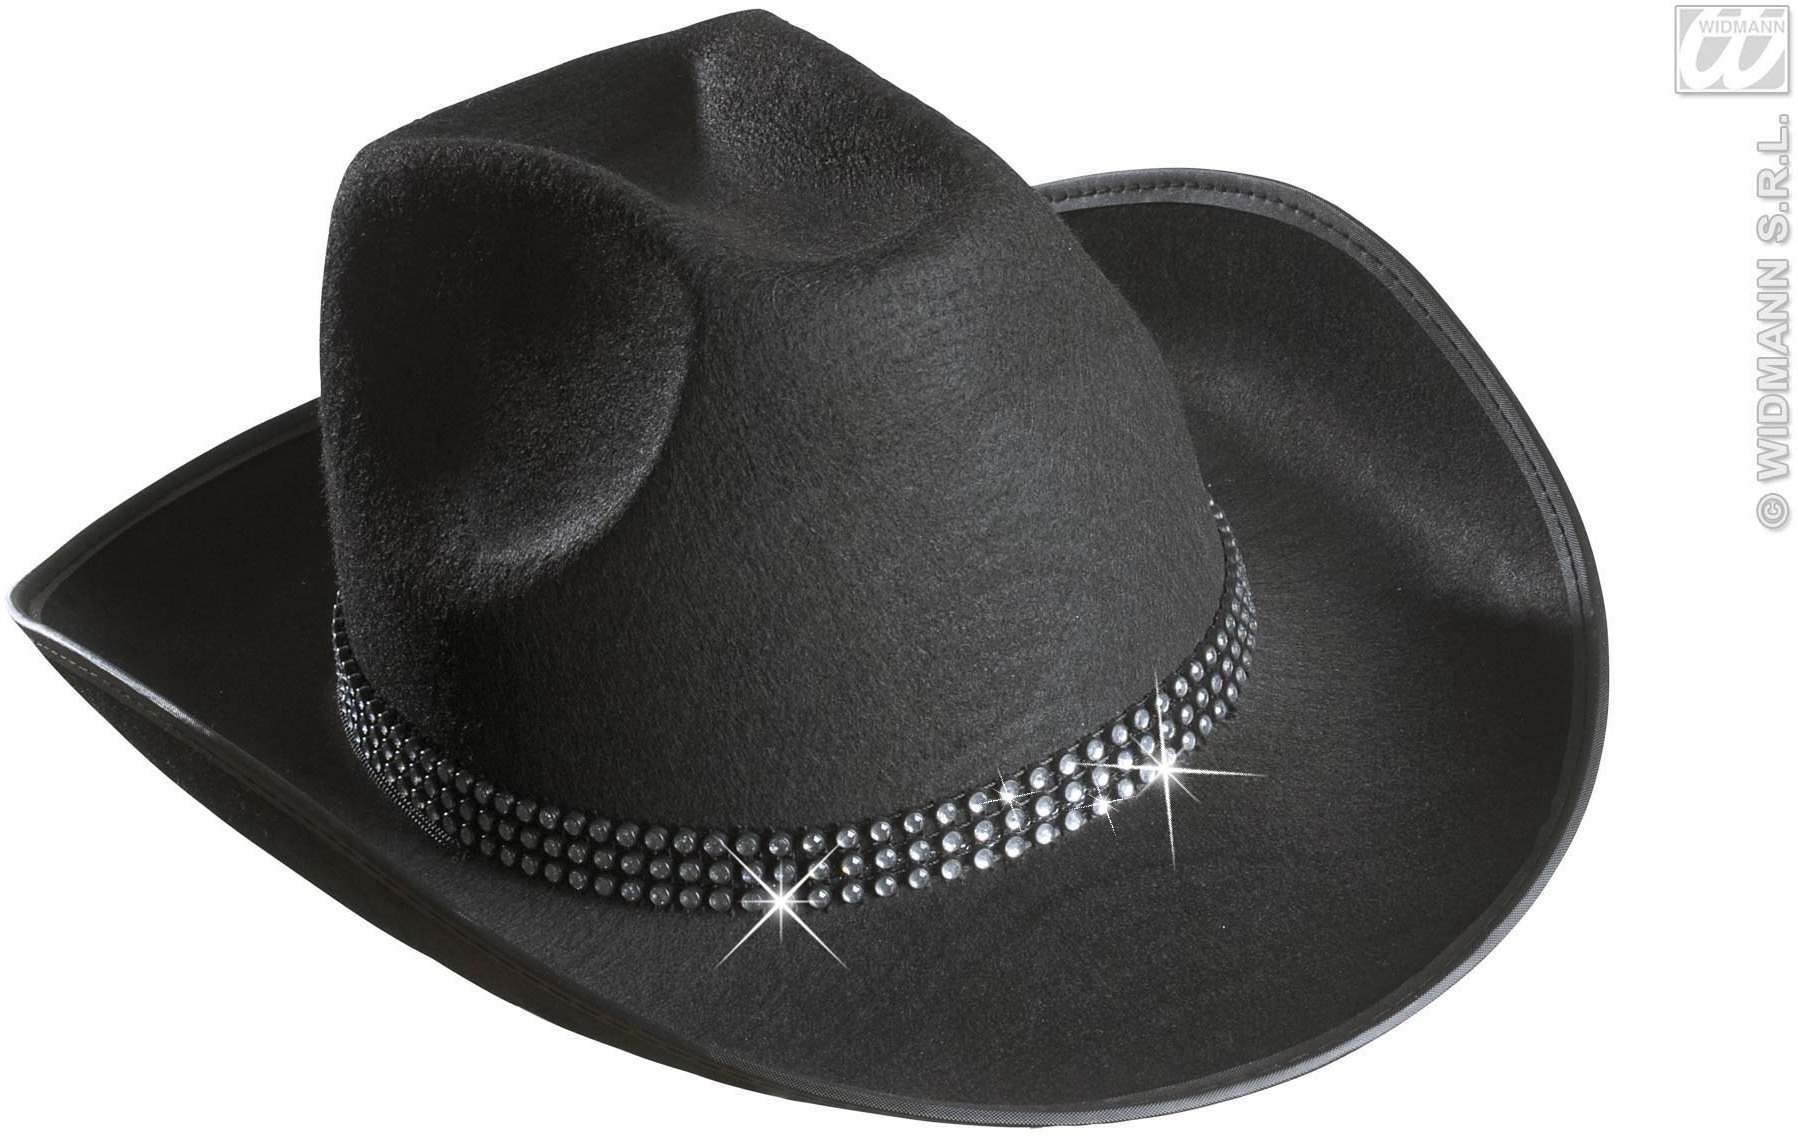 Cowboy Hat Felt W/Strass Band - Black - Fancy Dress (Cowboys/Indians)